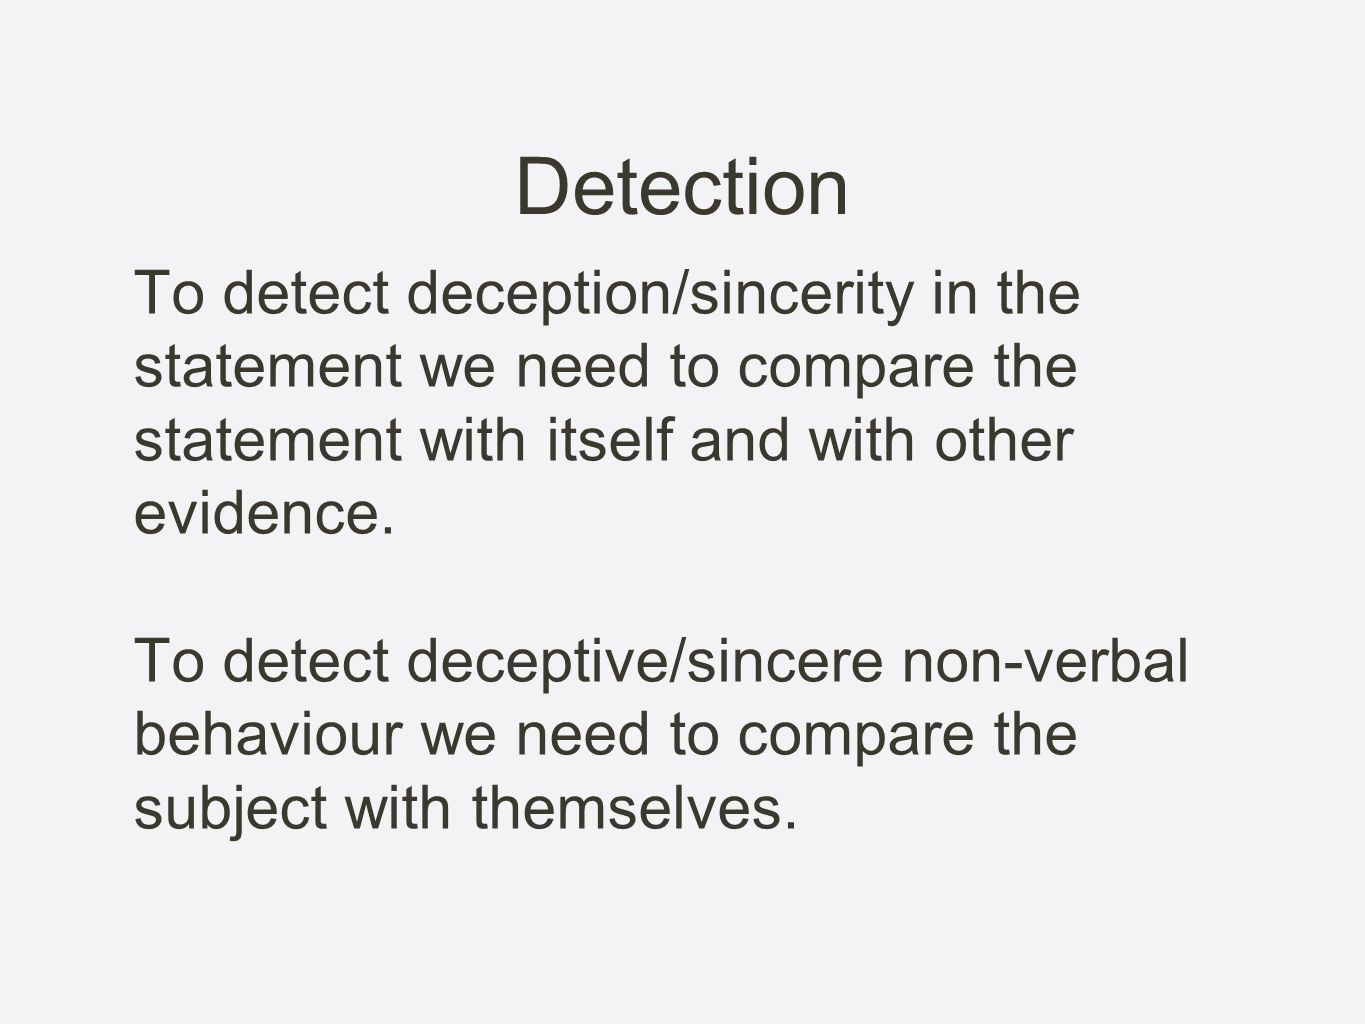 Detection To detect deception/sincerity in the statement we need to compare the statement with itself and with other evidence.